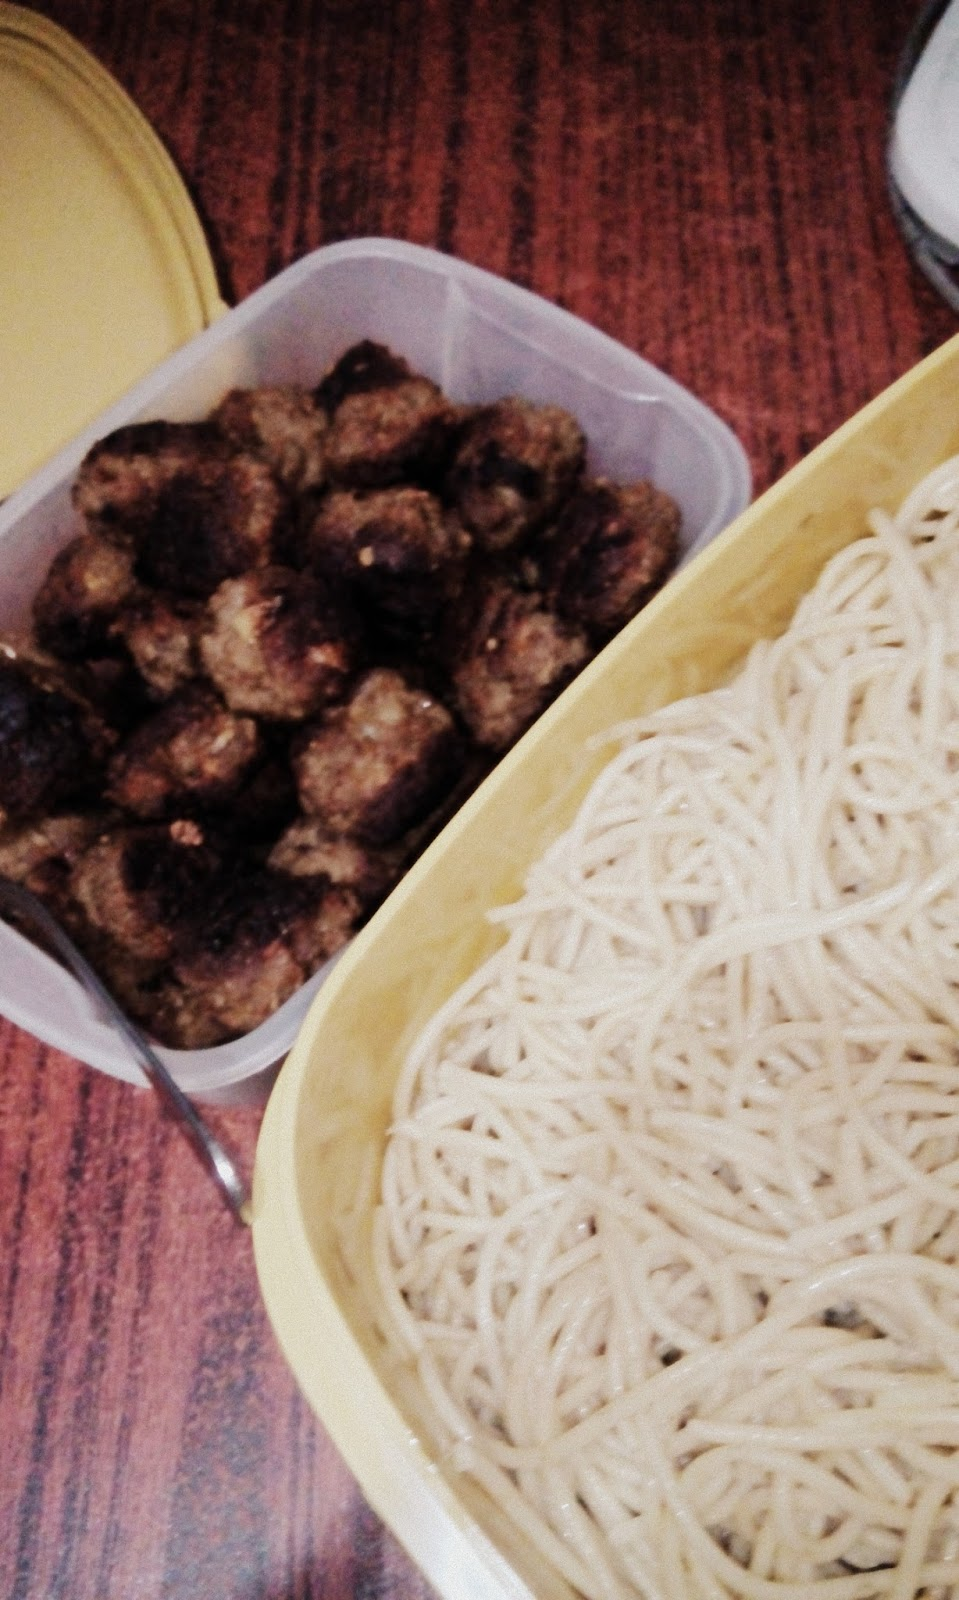 malunggay pasta Ingredients: 100 grams malunggay leaves, blanched and chopped 1/4 cup all-purpose cream 1/2 cup cream cheese 1/4 teaspoon white pepper 1 pc large white onion, minced and glaze salt to taste potato chips for serving how.